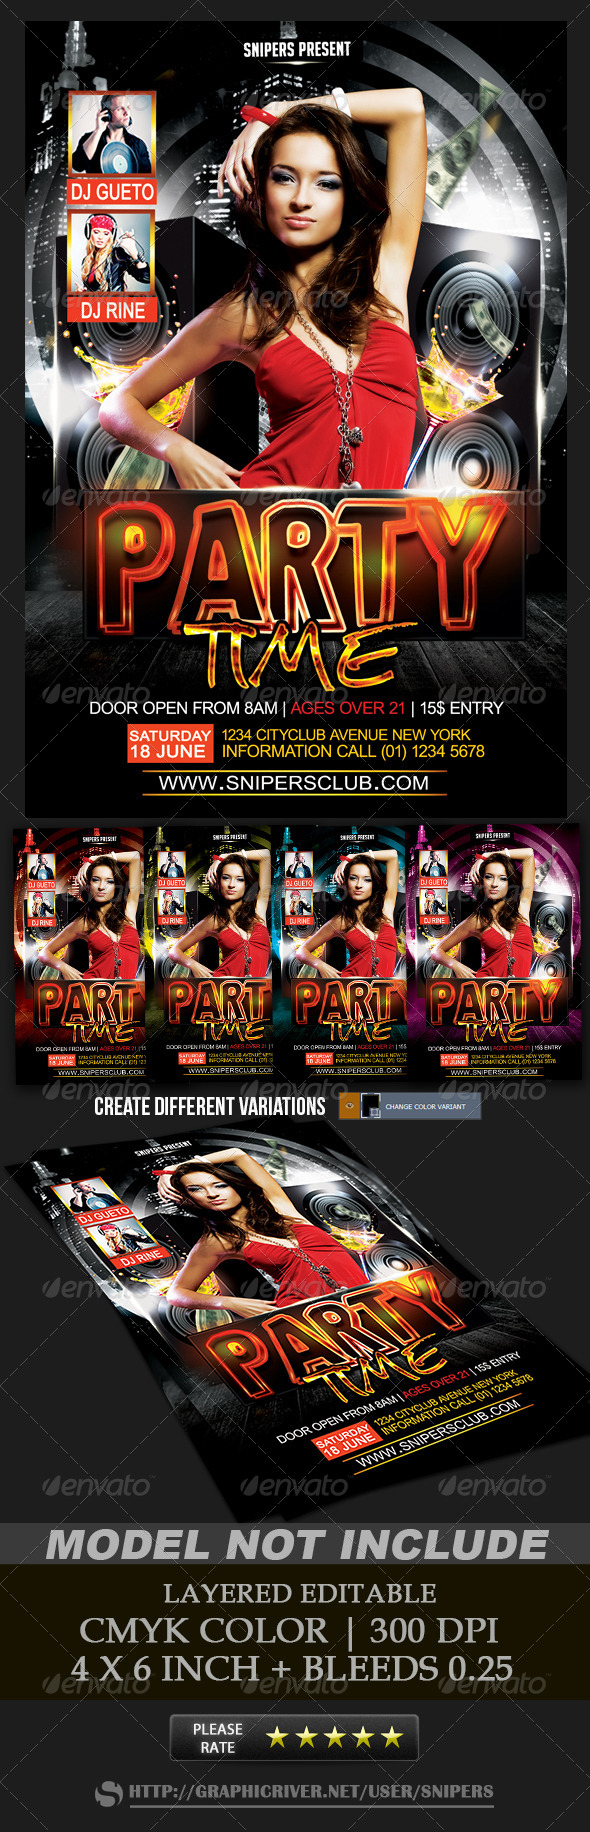 Party Time Flyer PSD Template Buy and Download http